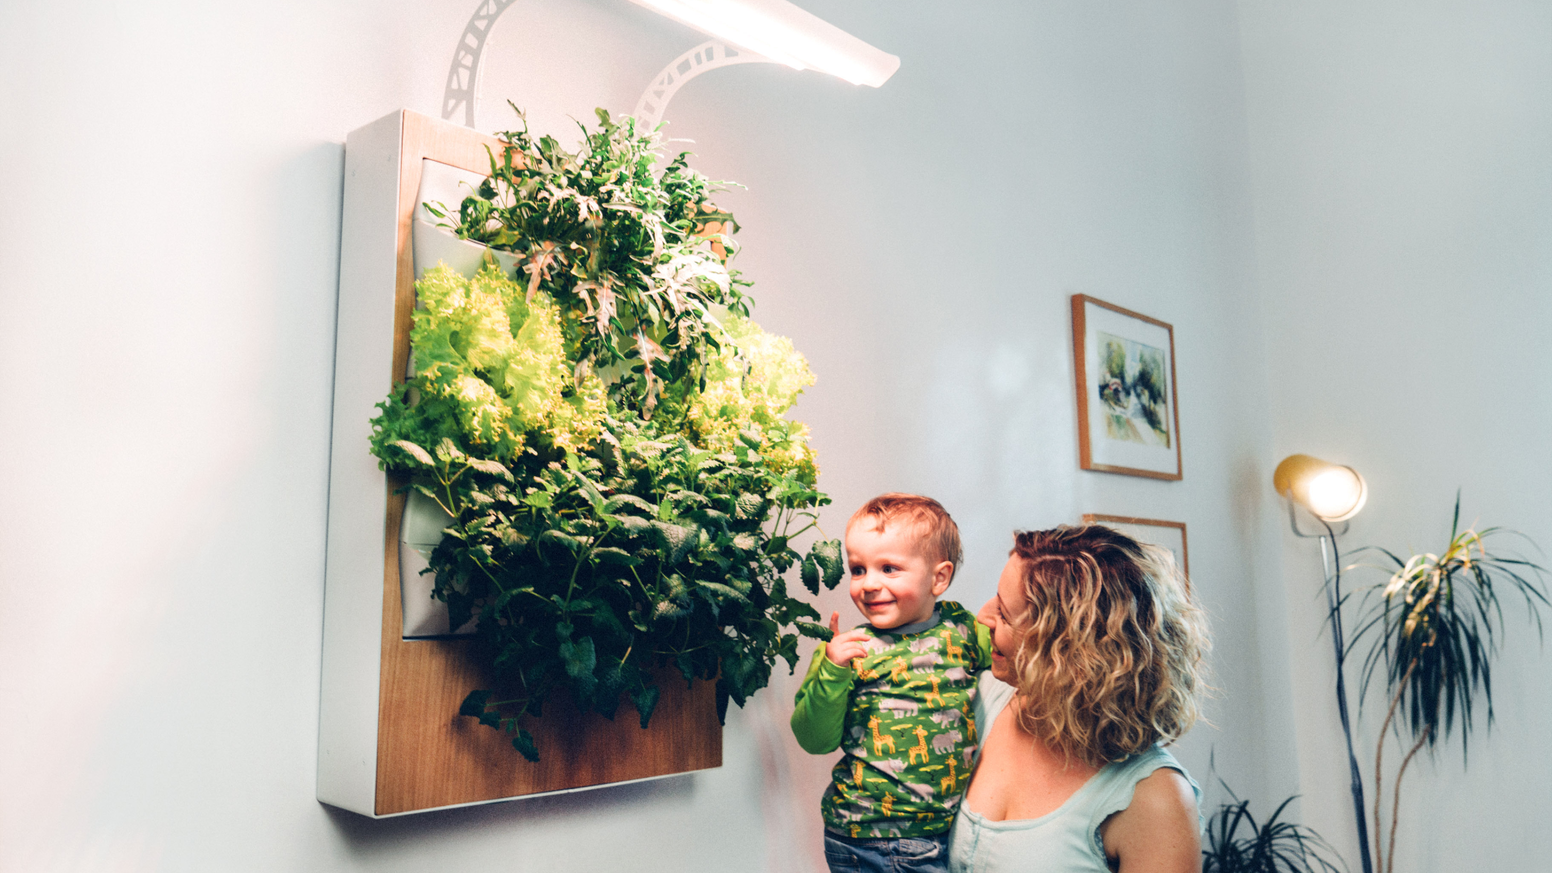 The hydroponic vertical farm for your home. Simple, clean and 40% more efficient. Salads and more in your indoor garden all year around